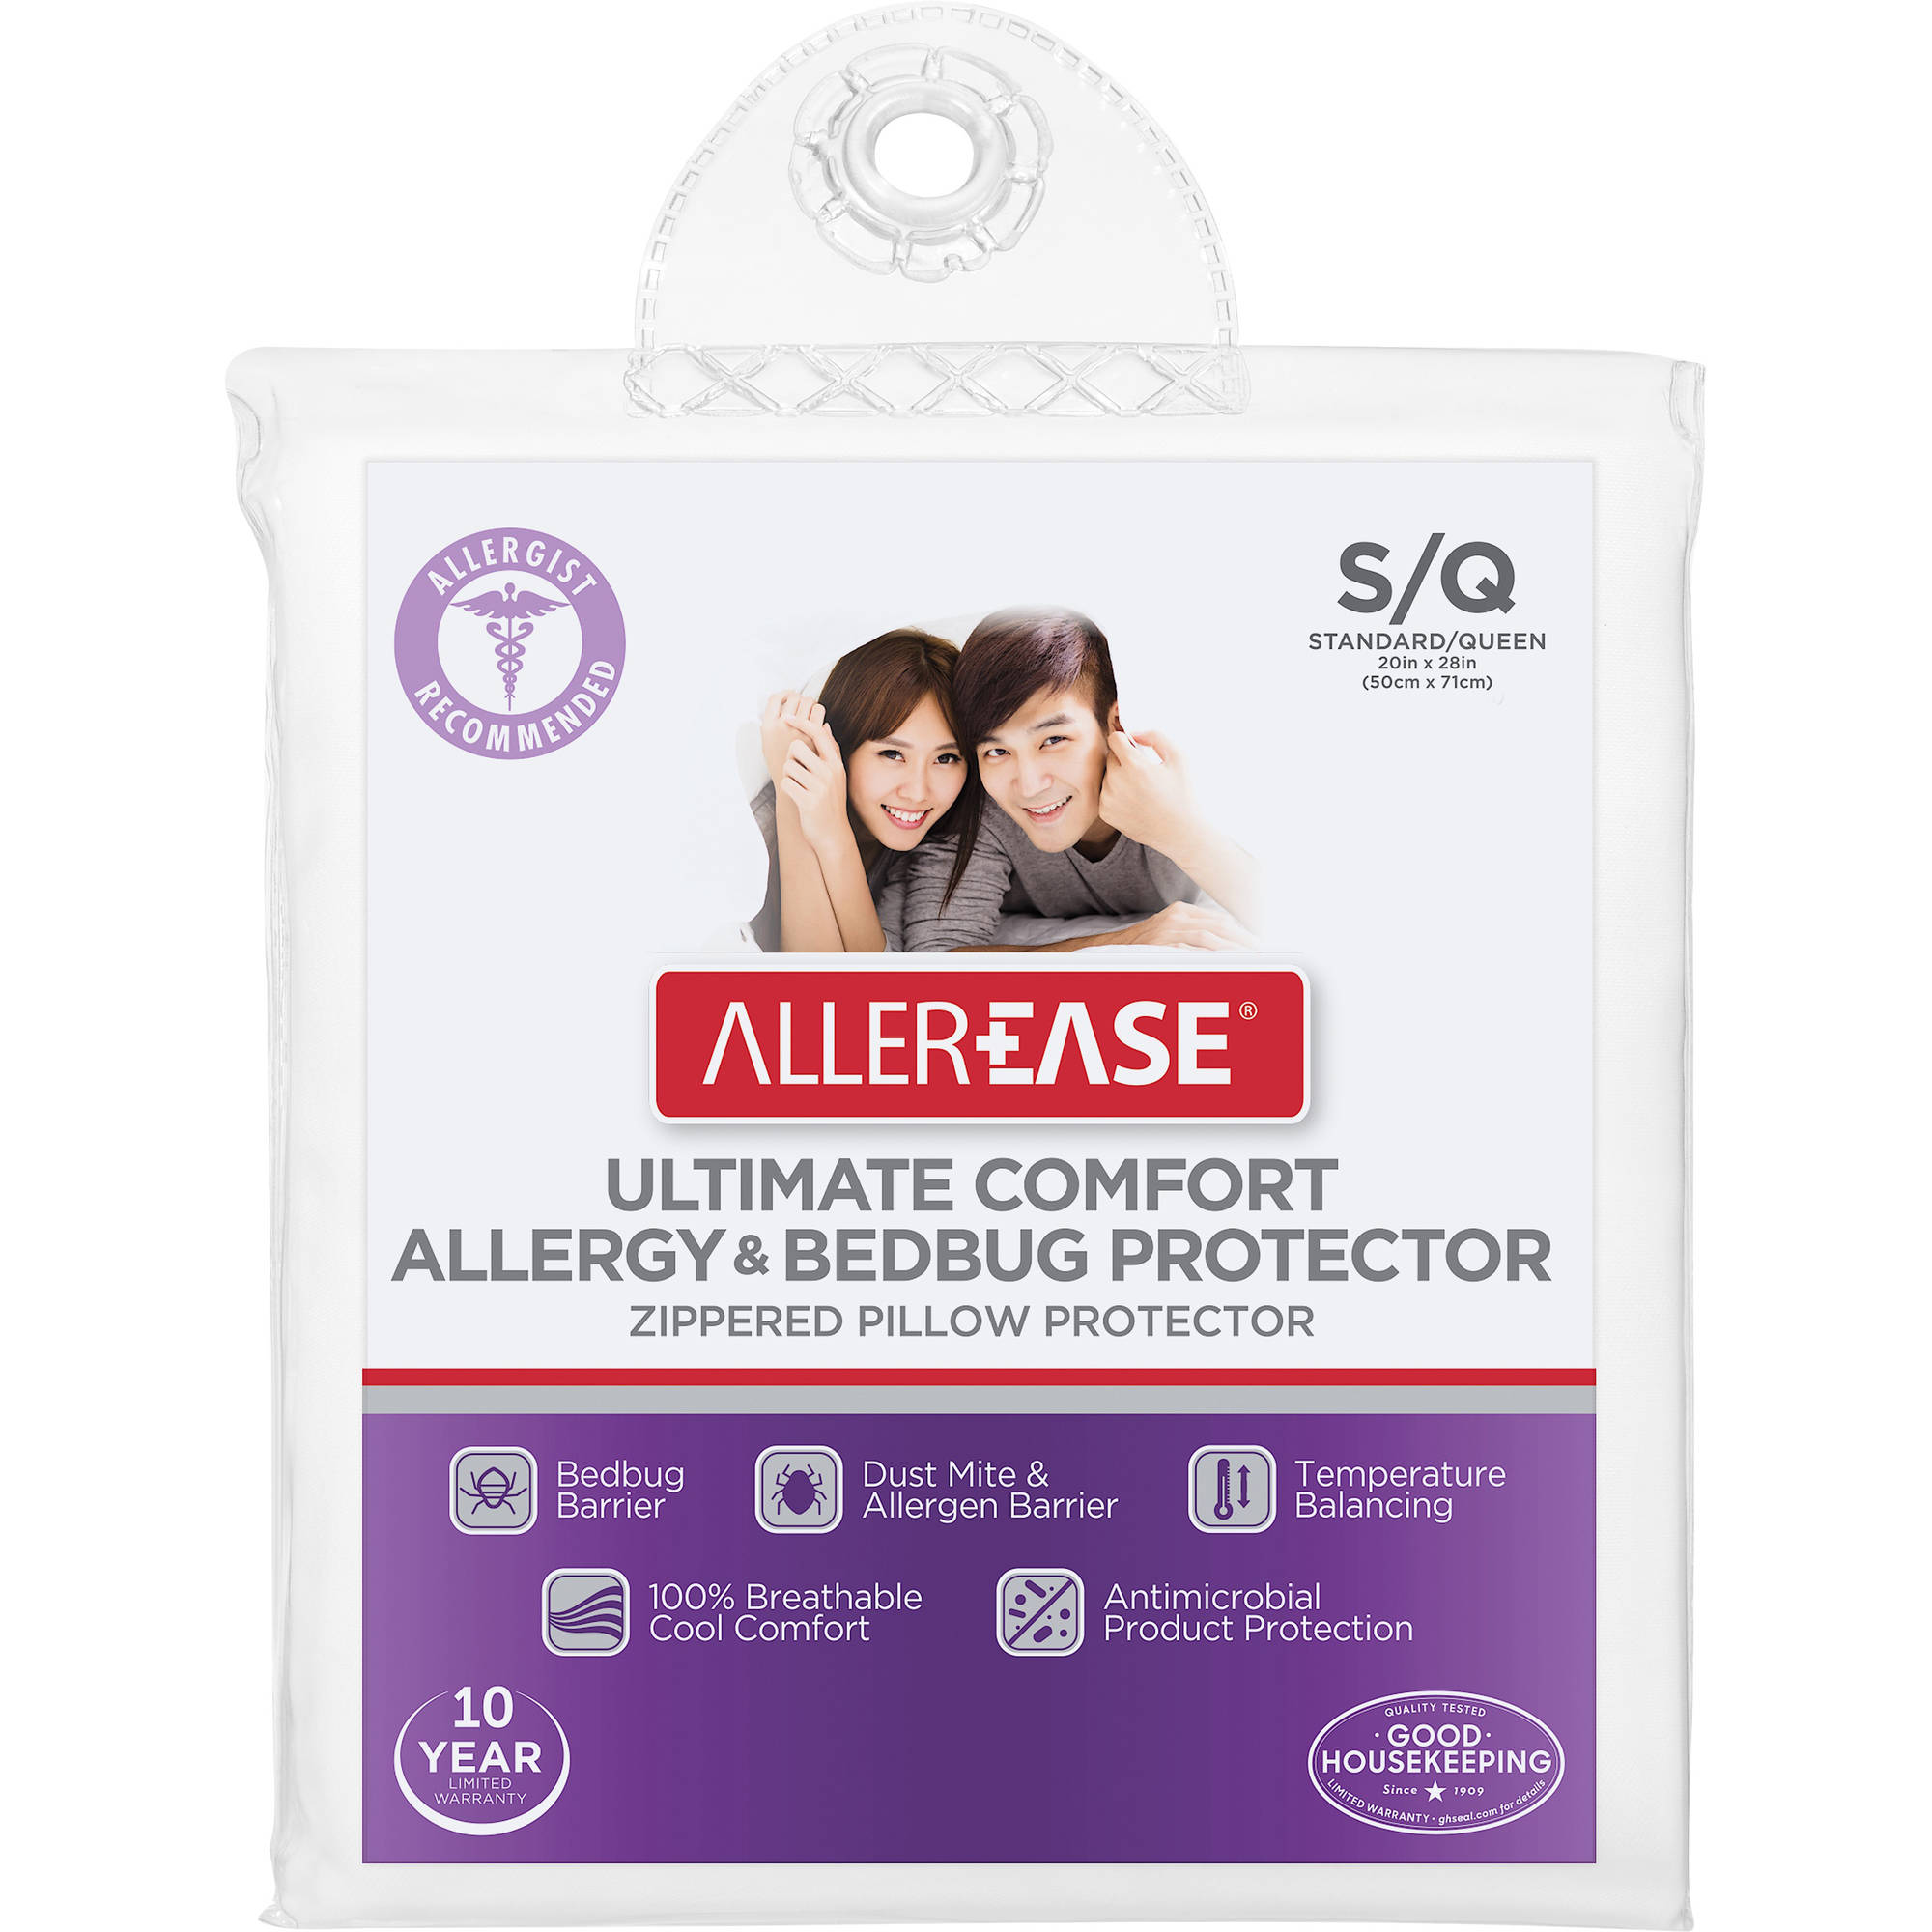 AllerEase Ultimate Comfort Allergy & Bedbug Zippered Pillow Protector, S/Q